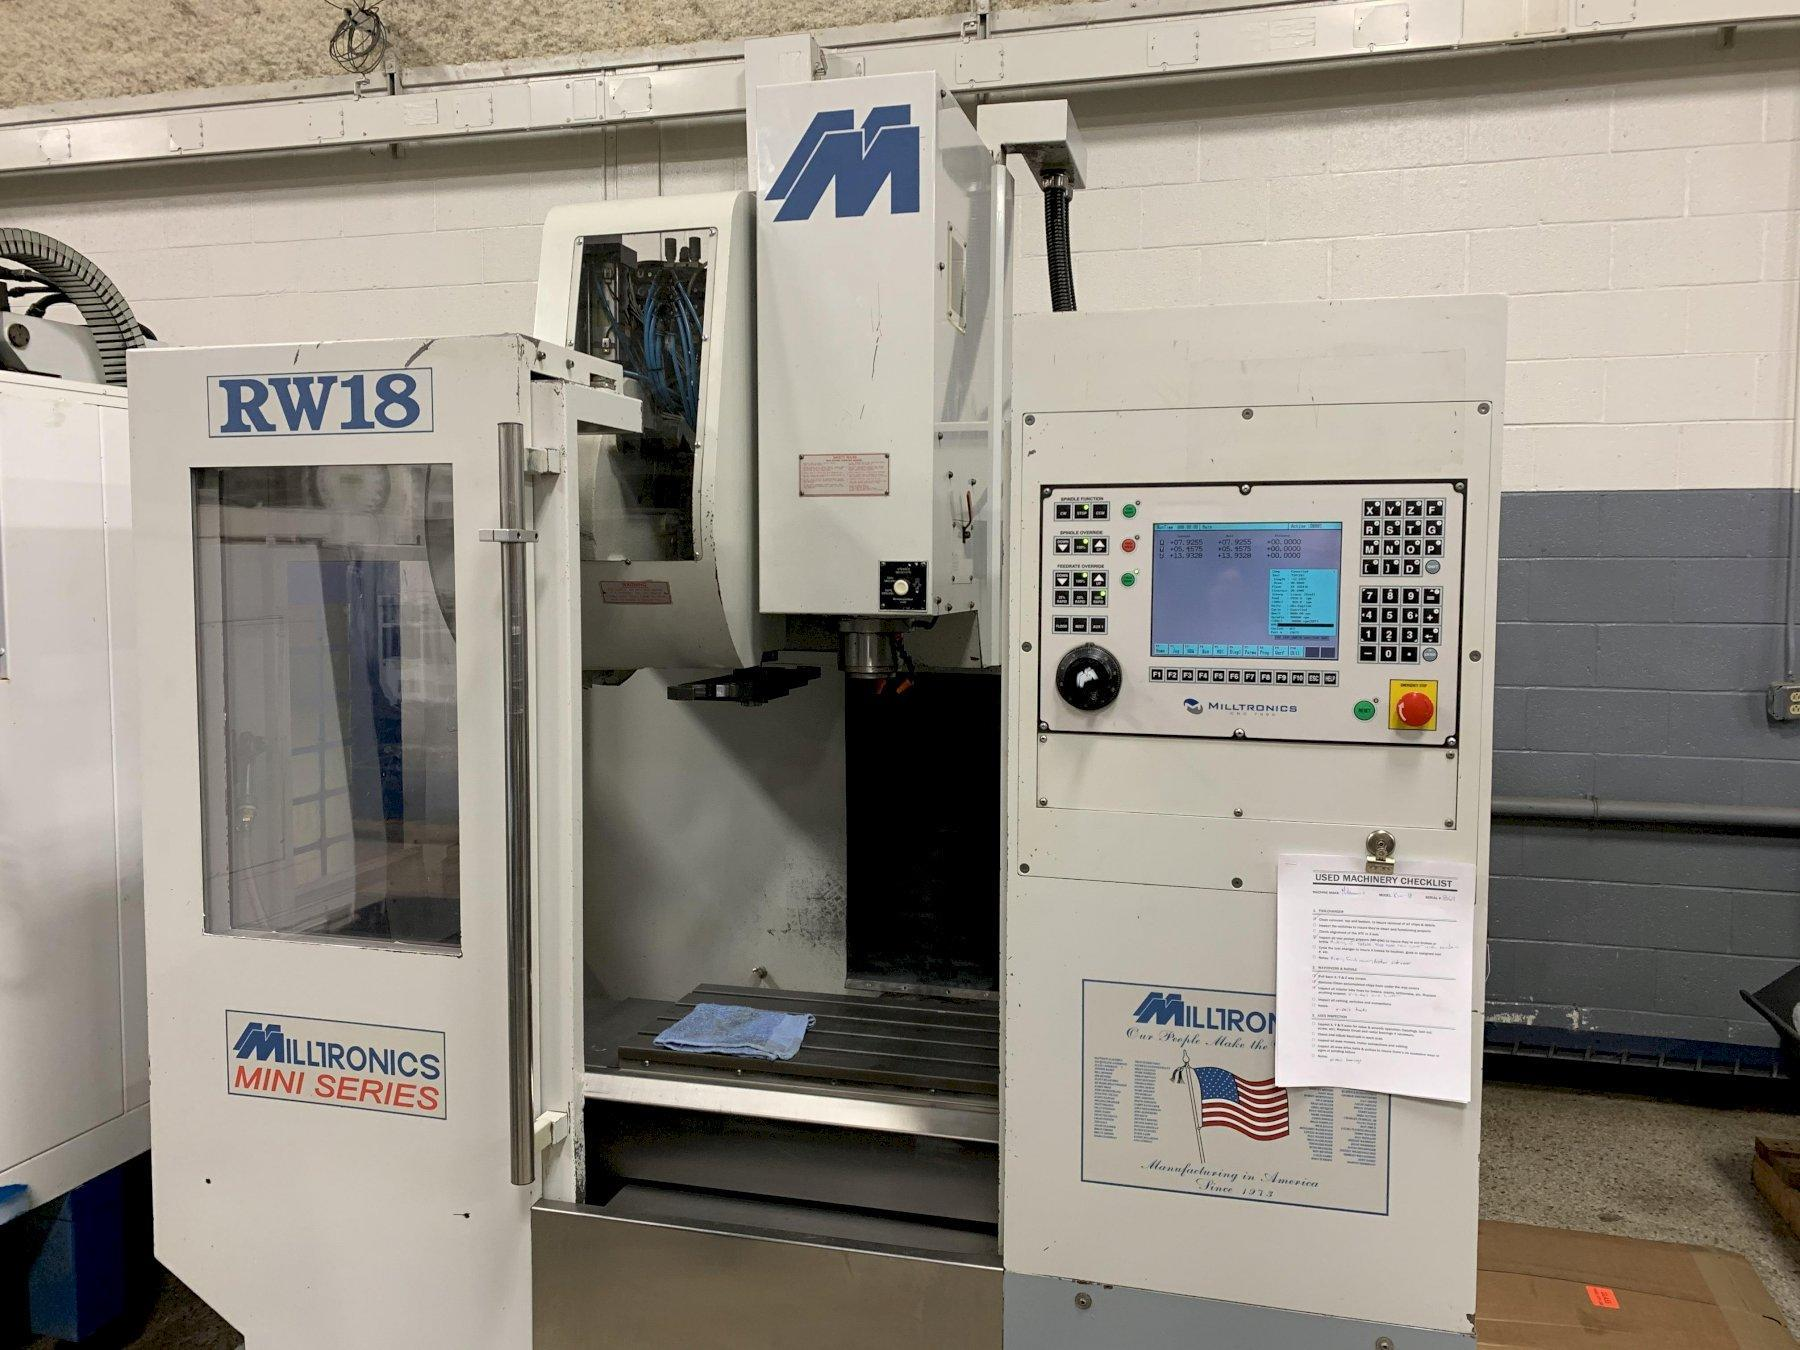 Milltronics RW18 Vertical Machining Center, S/N 8069